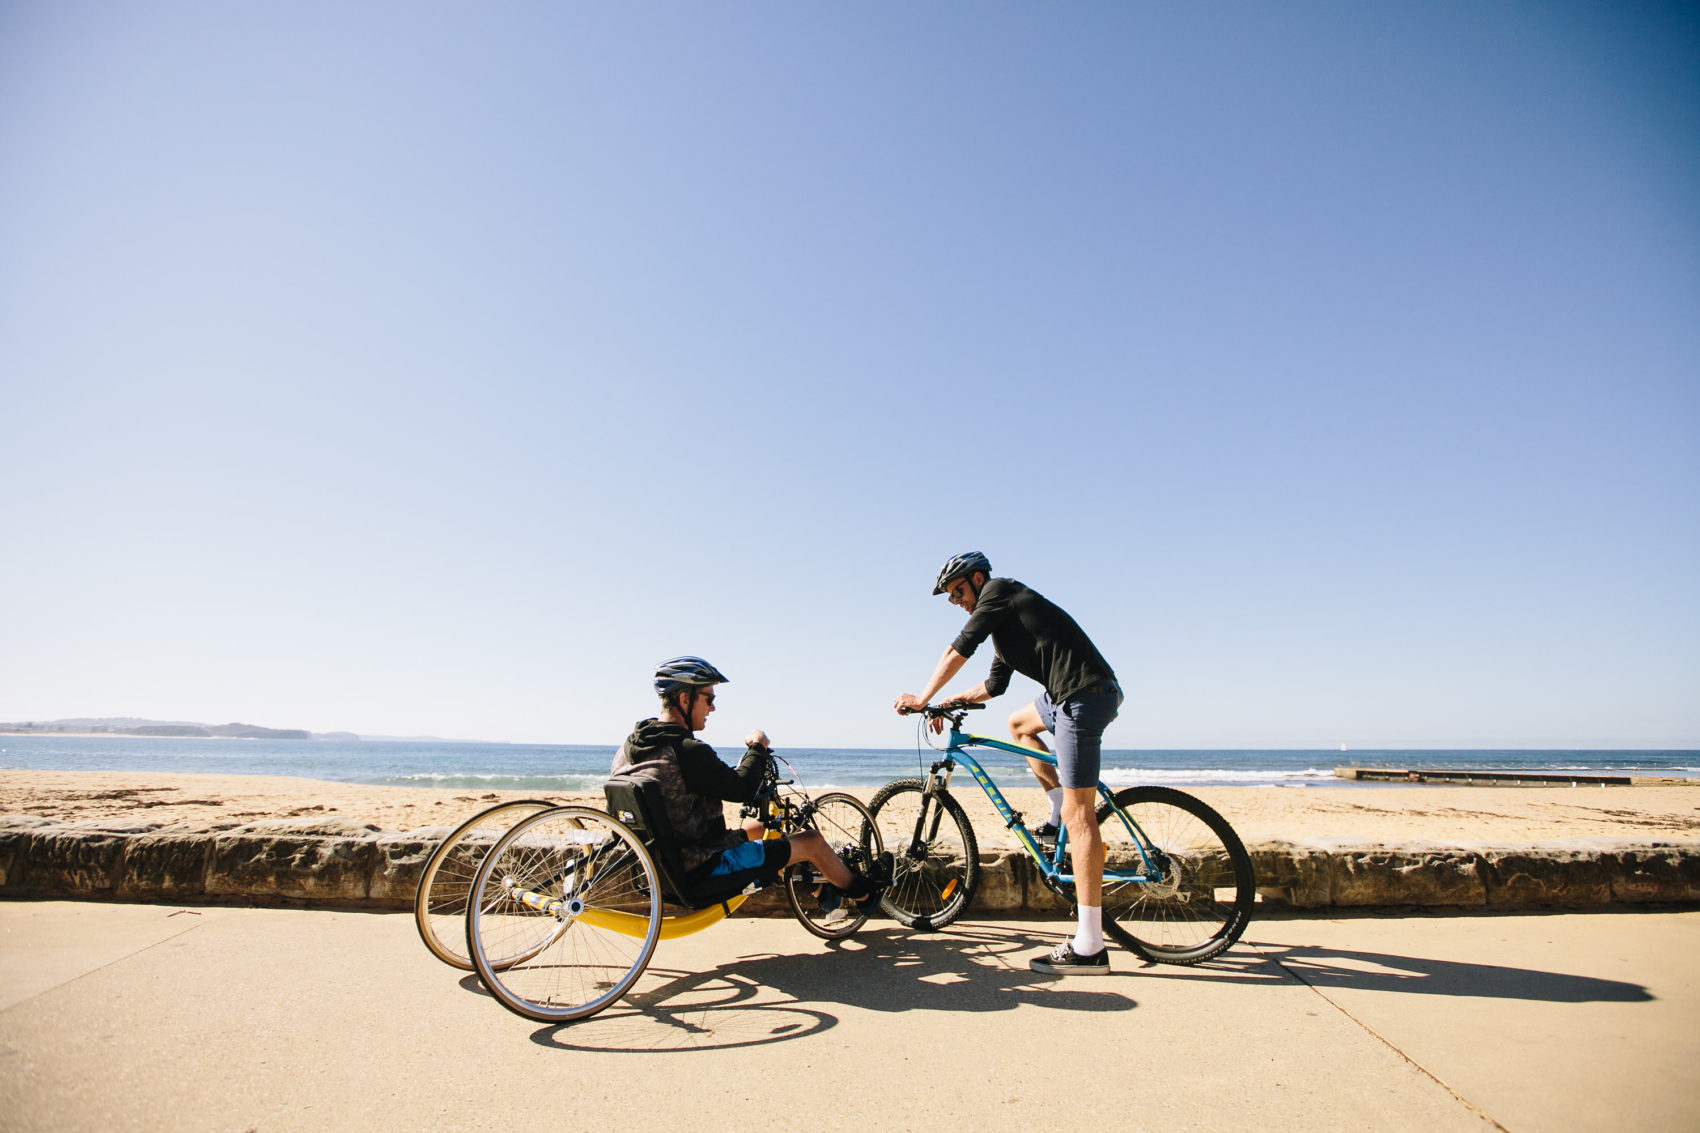 Sargood_On_Collaroy_accessible_bike_beach_riding